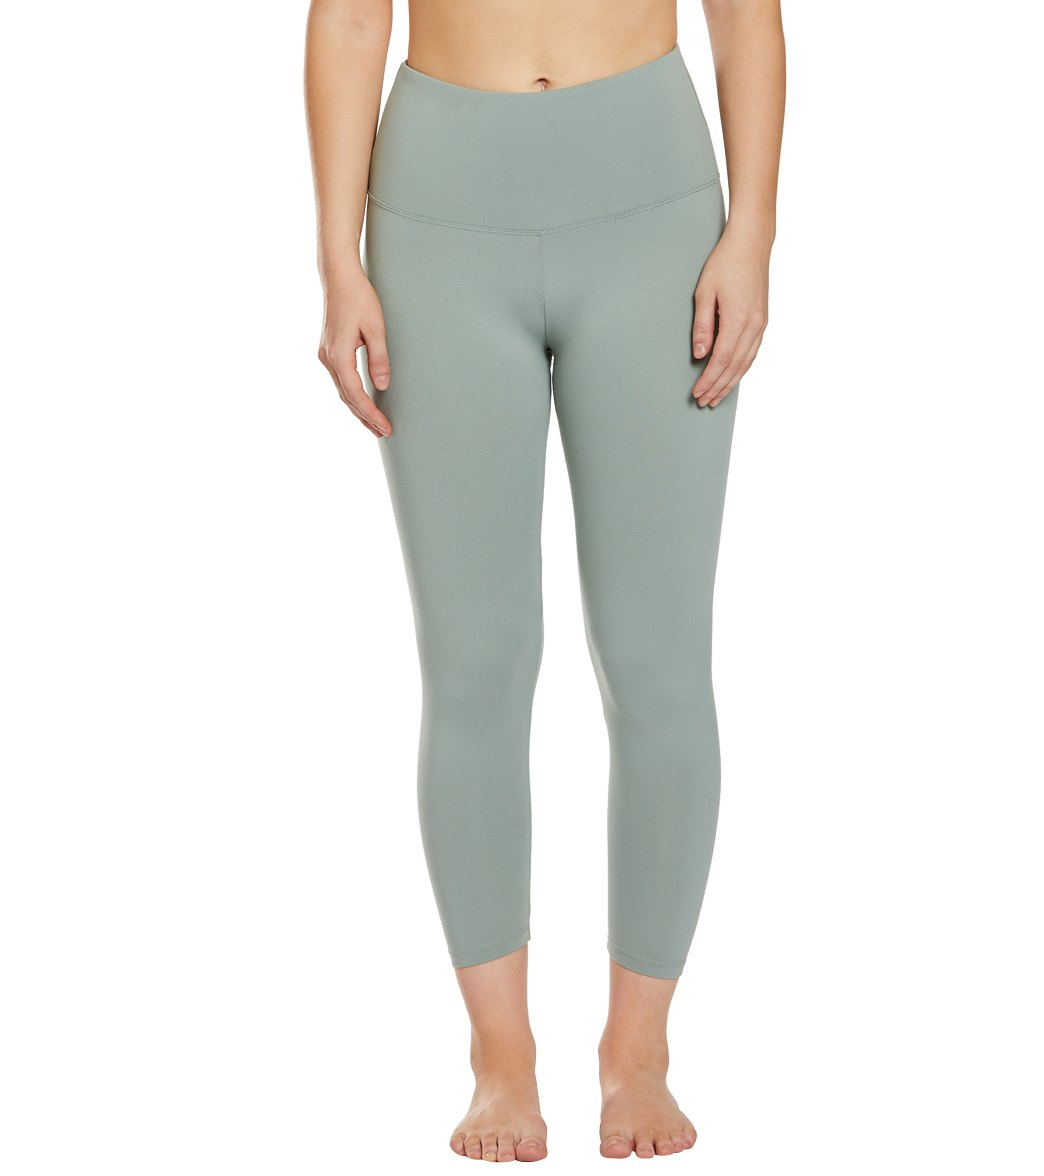 Balance Collection Ultra High Waisted Yoga Capri Pants - Slate Grey Cotton